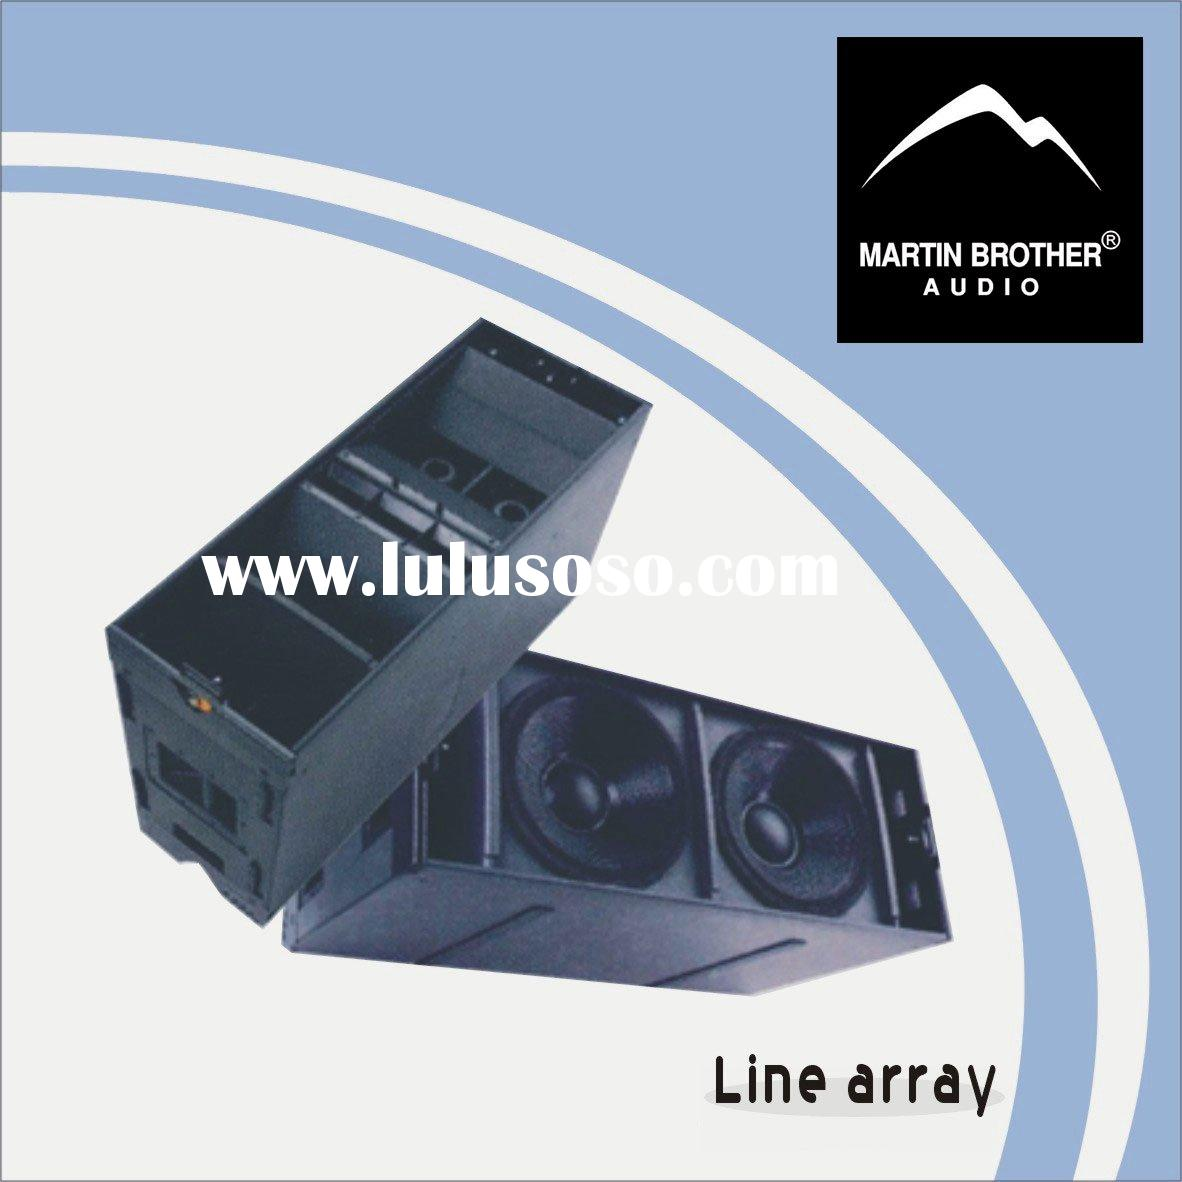 Line array systems pro audio / loudspeaker